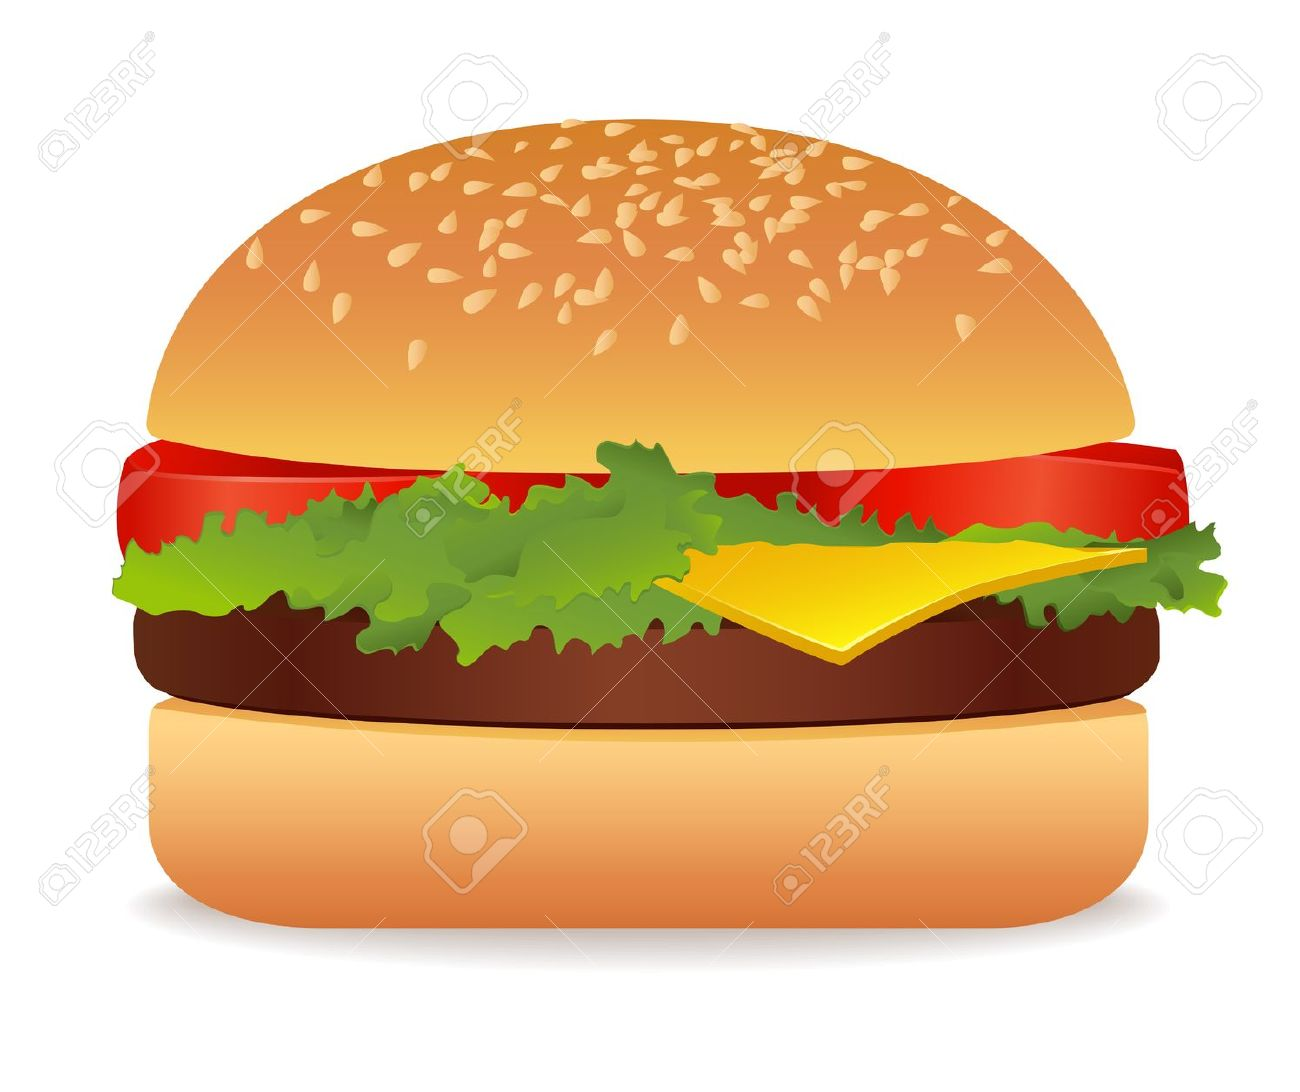 burger clipart clear background